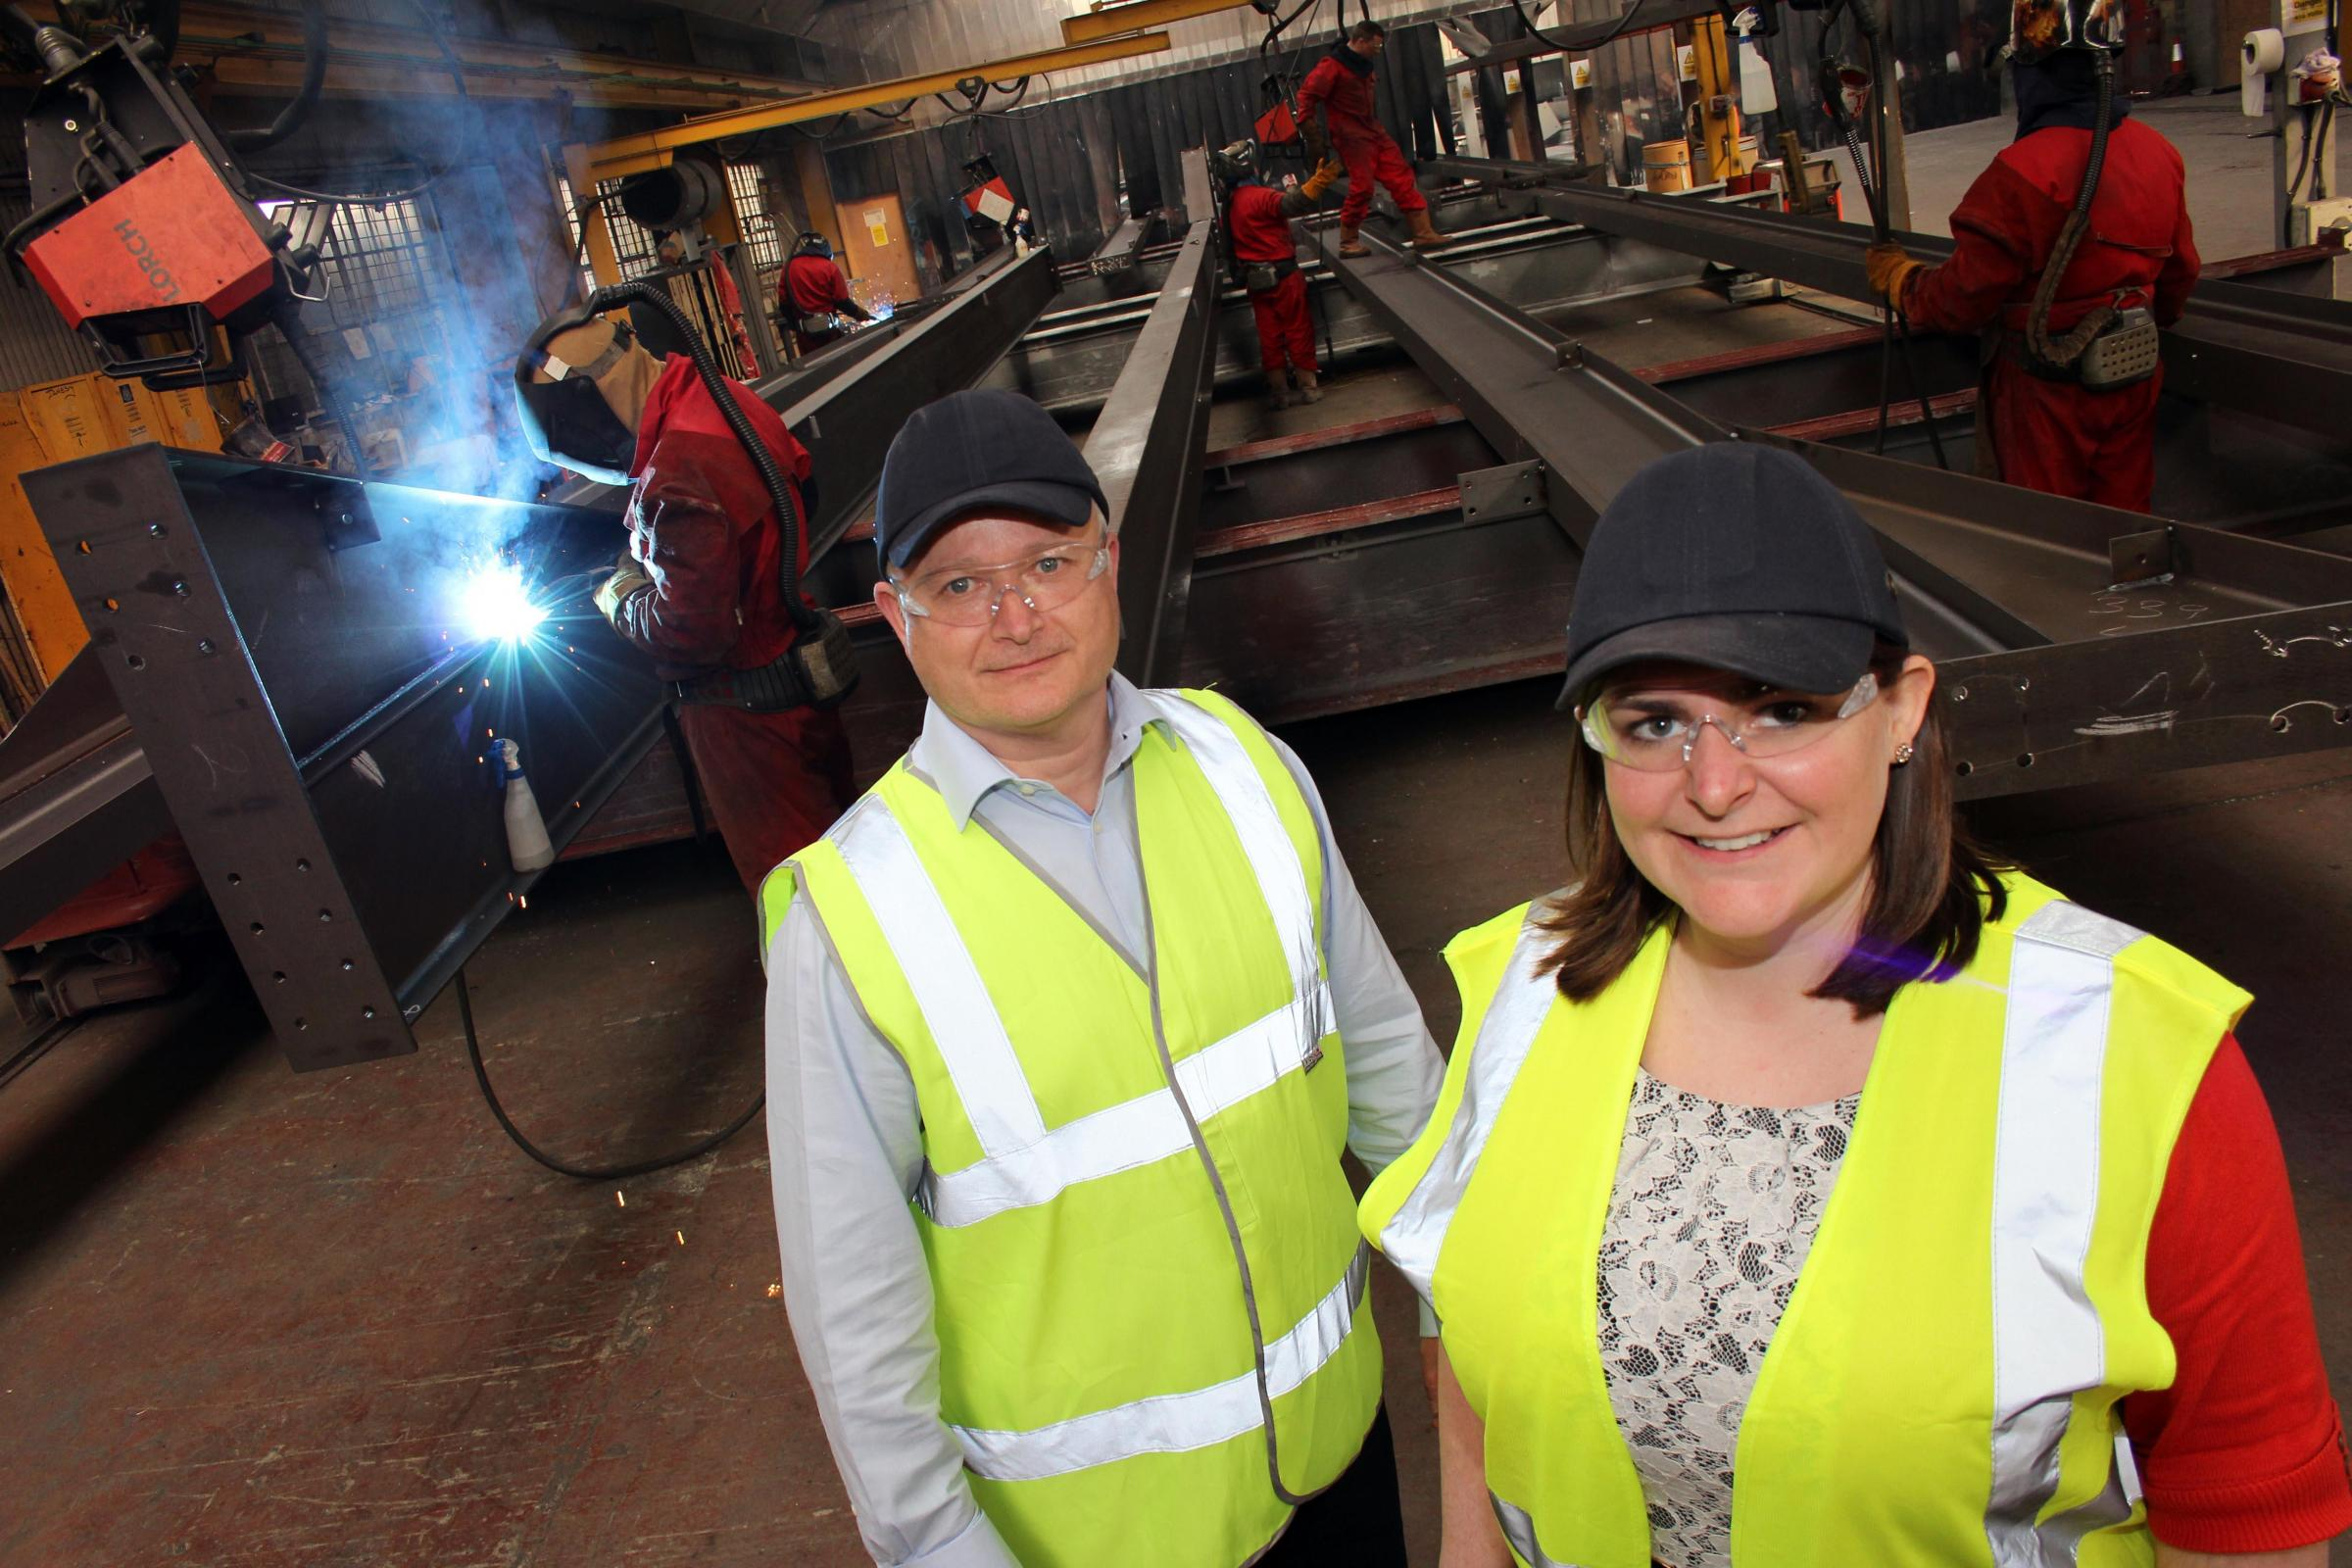 STRONG TEAM: Finley Structures' new senior quantity surveyor Diane Ruston with operations manager Jim Graham. They are pictured in the company's plant as staff work on steel for Hitachi Rail Europe's Newton Aycliffe £82m factory